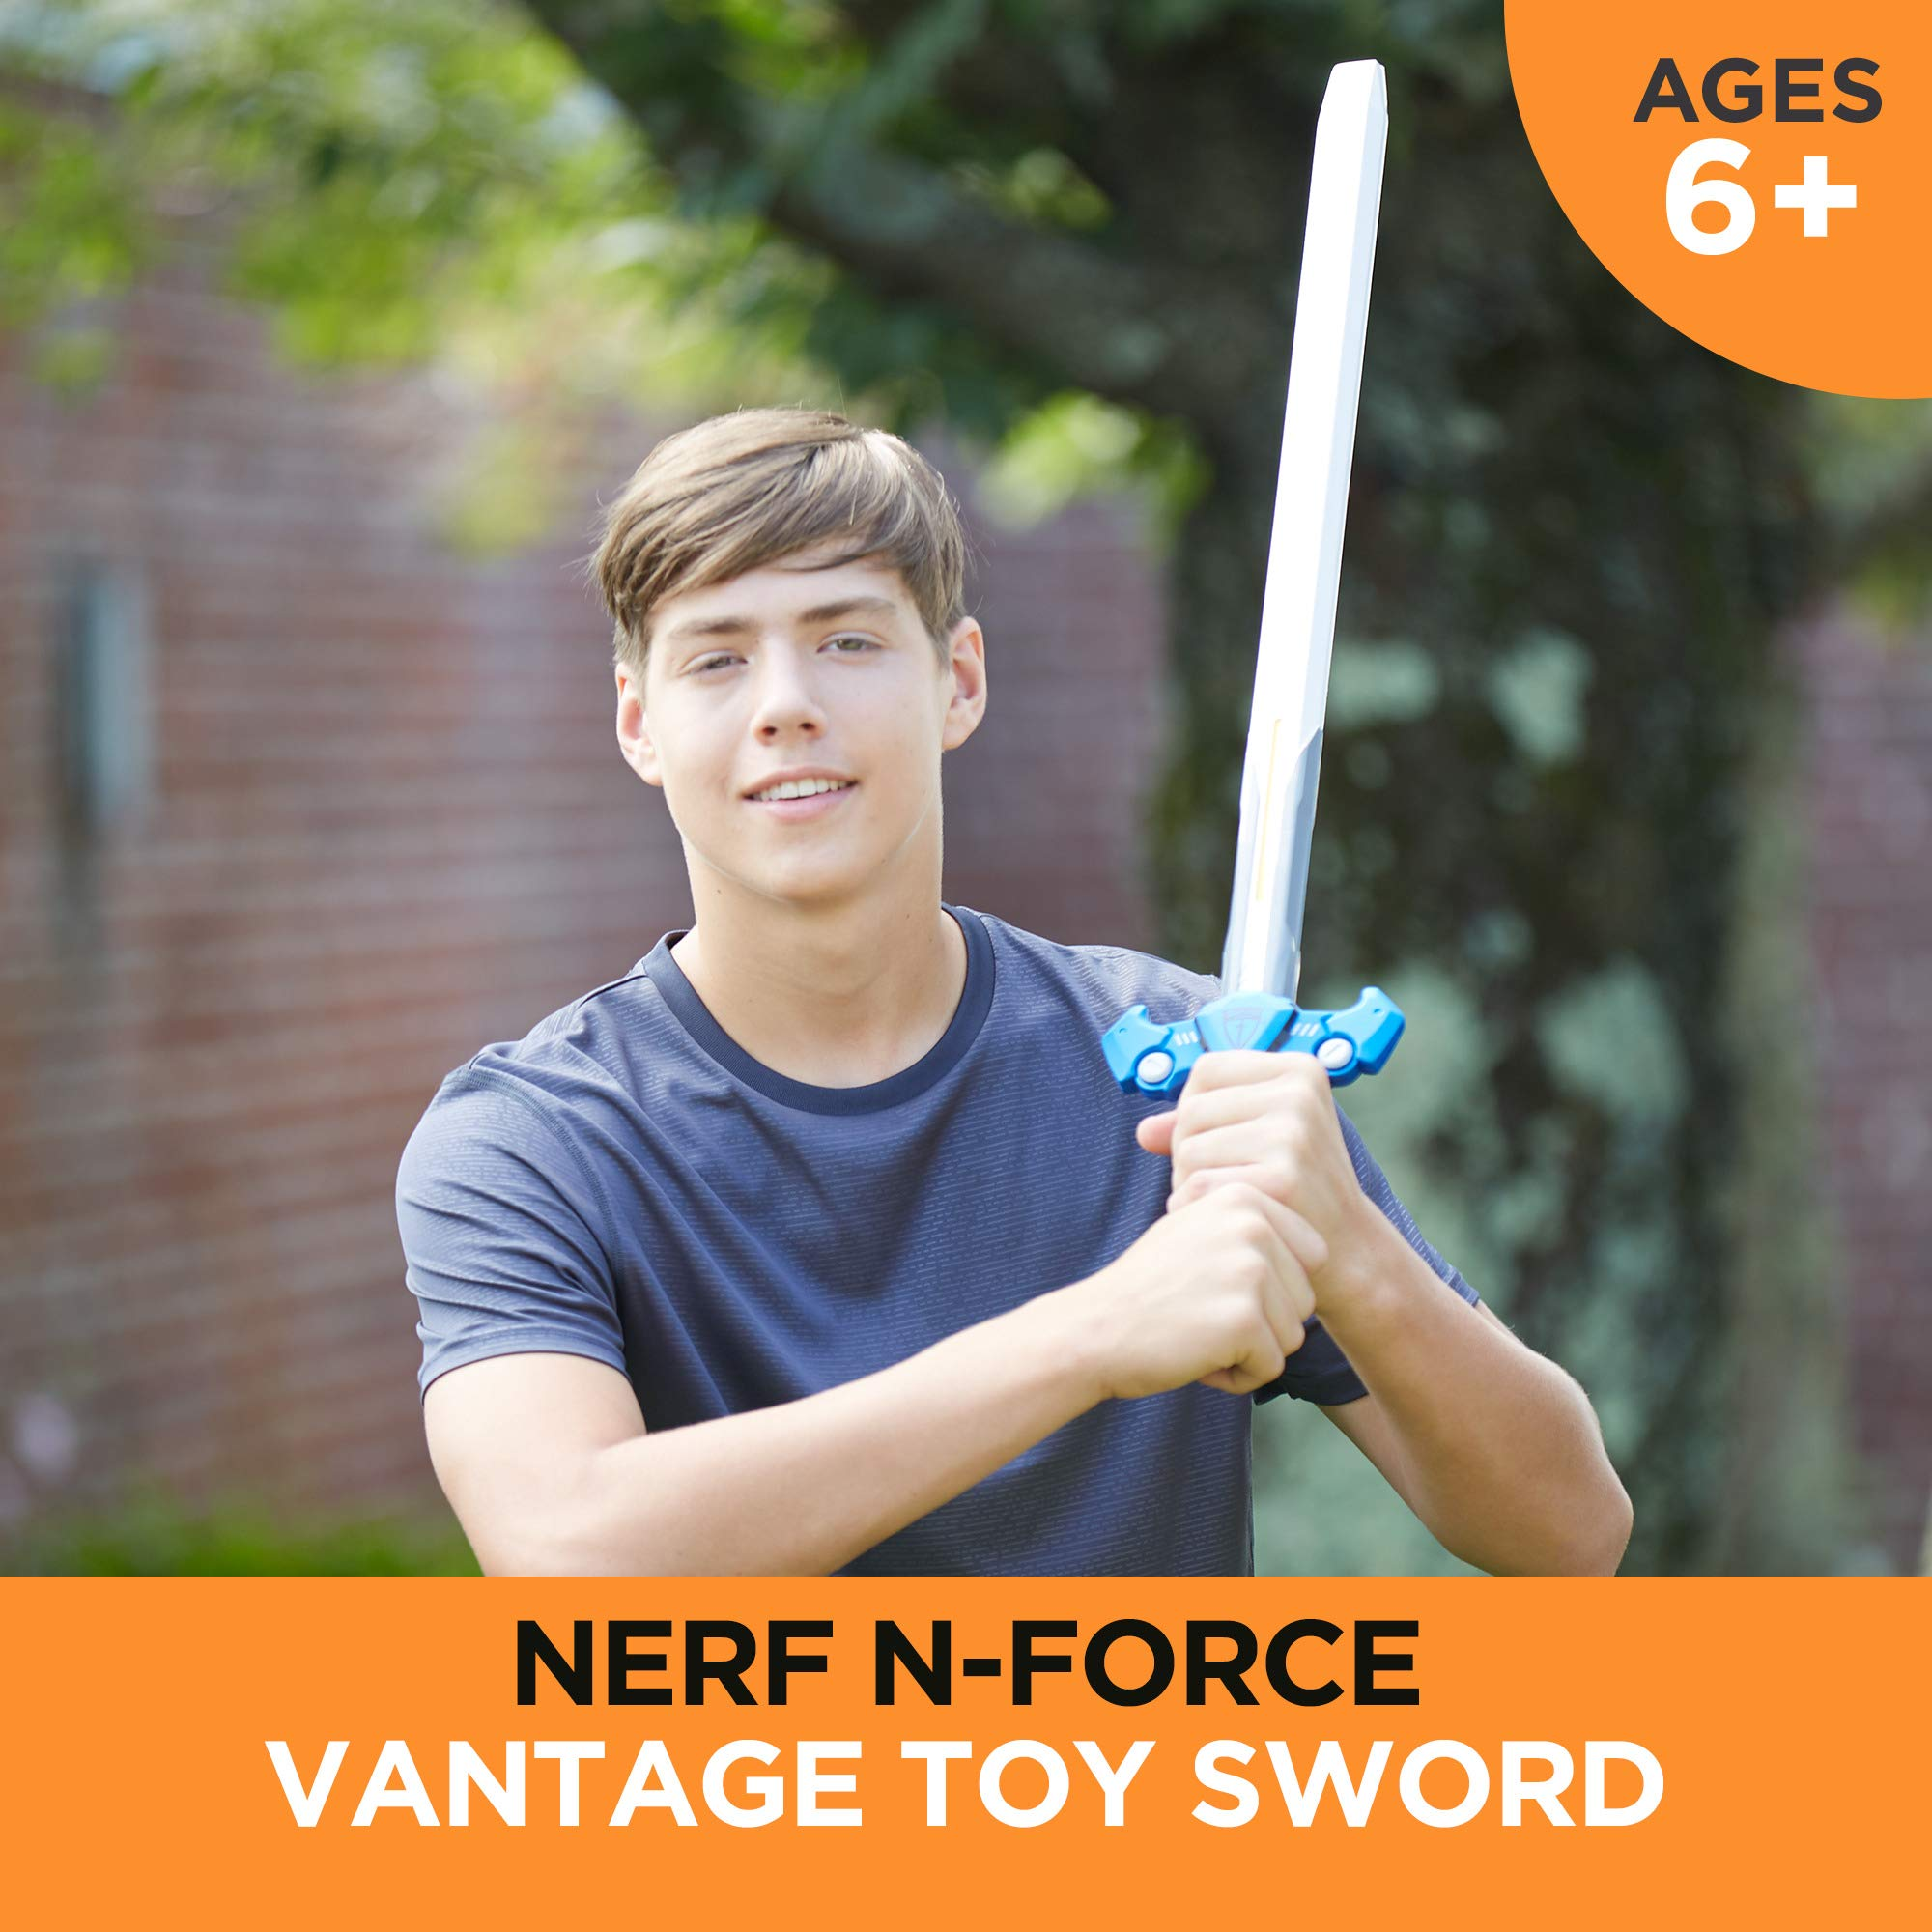 Vantage Nerf N-Force Toy Sword - 32 Inches Long - Nerf Foam Blade with Plastic Core - For Kids, Teens, Adults (Amazon Exclusive) by NERF (Image #3)